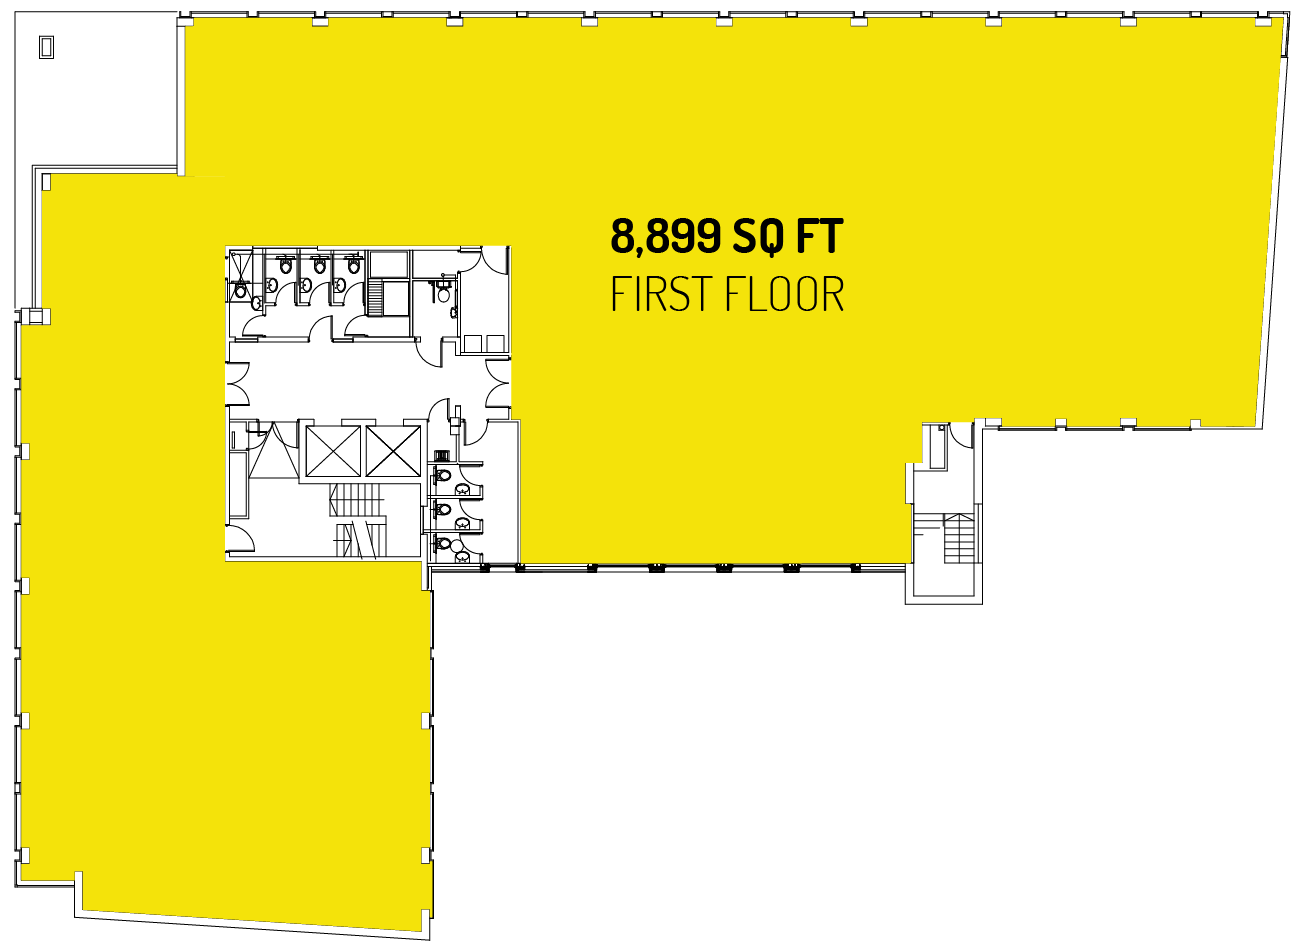 8,899 sq ft on the first floor